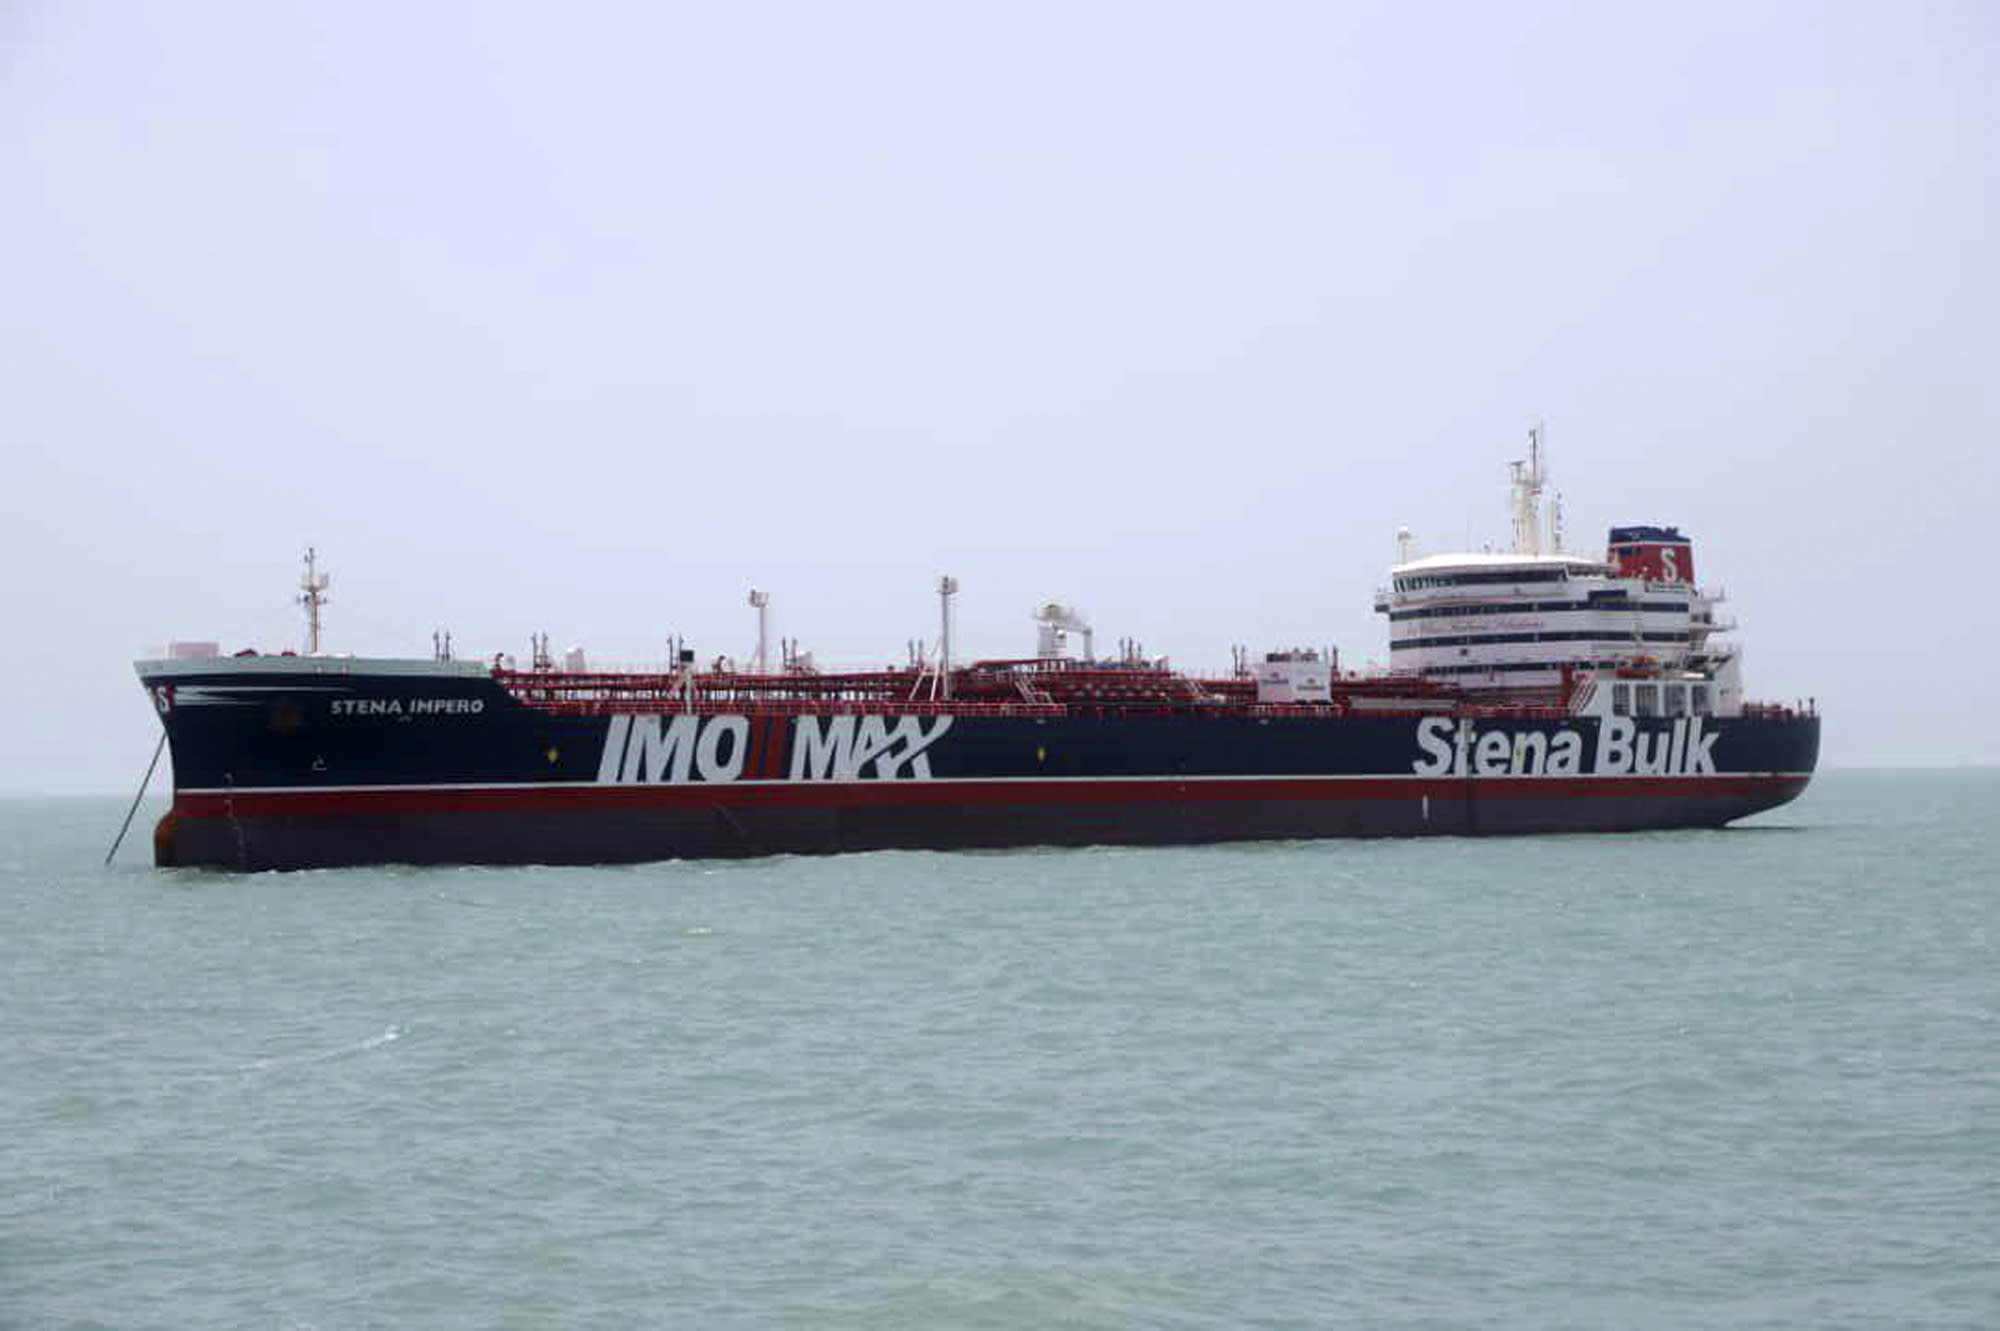 """A British-flagged oil tanker Stena Impero which was seized by the Iran's Revolutionary Guard on Friday is photographed in the Iranian port of Bandar Abbas, Saturday, July 20, 2019. The chairman of Britain's House of Commons Foreign Affairs Committee says military action to free the oil tanker seized by Iran would not be a good choice. Tom Tugendhat said Saturday it would be """"extremely unwise"""" to seek a military solution to the escalating crisis, especially because the vessel has apparently been taken to a well-protected port. (Tasnim News Agency/via AP)"""